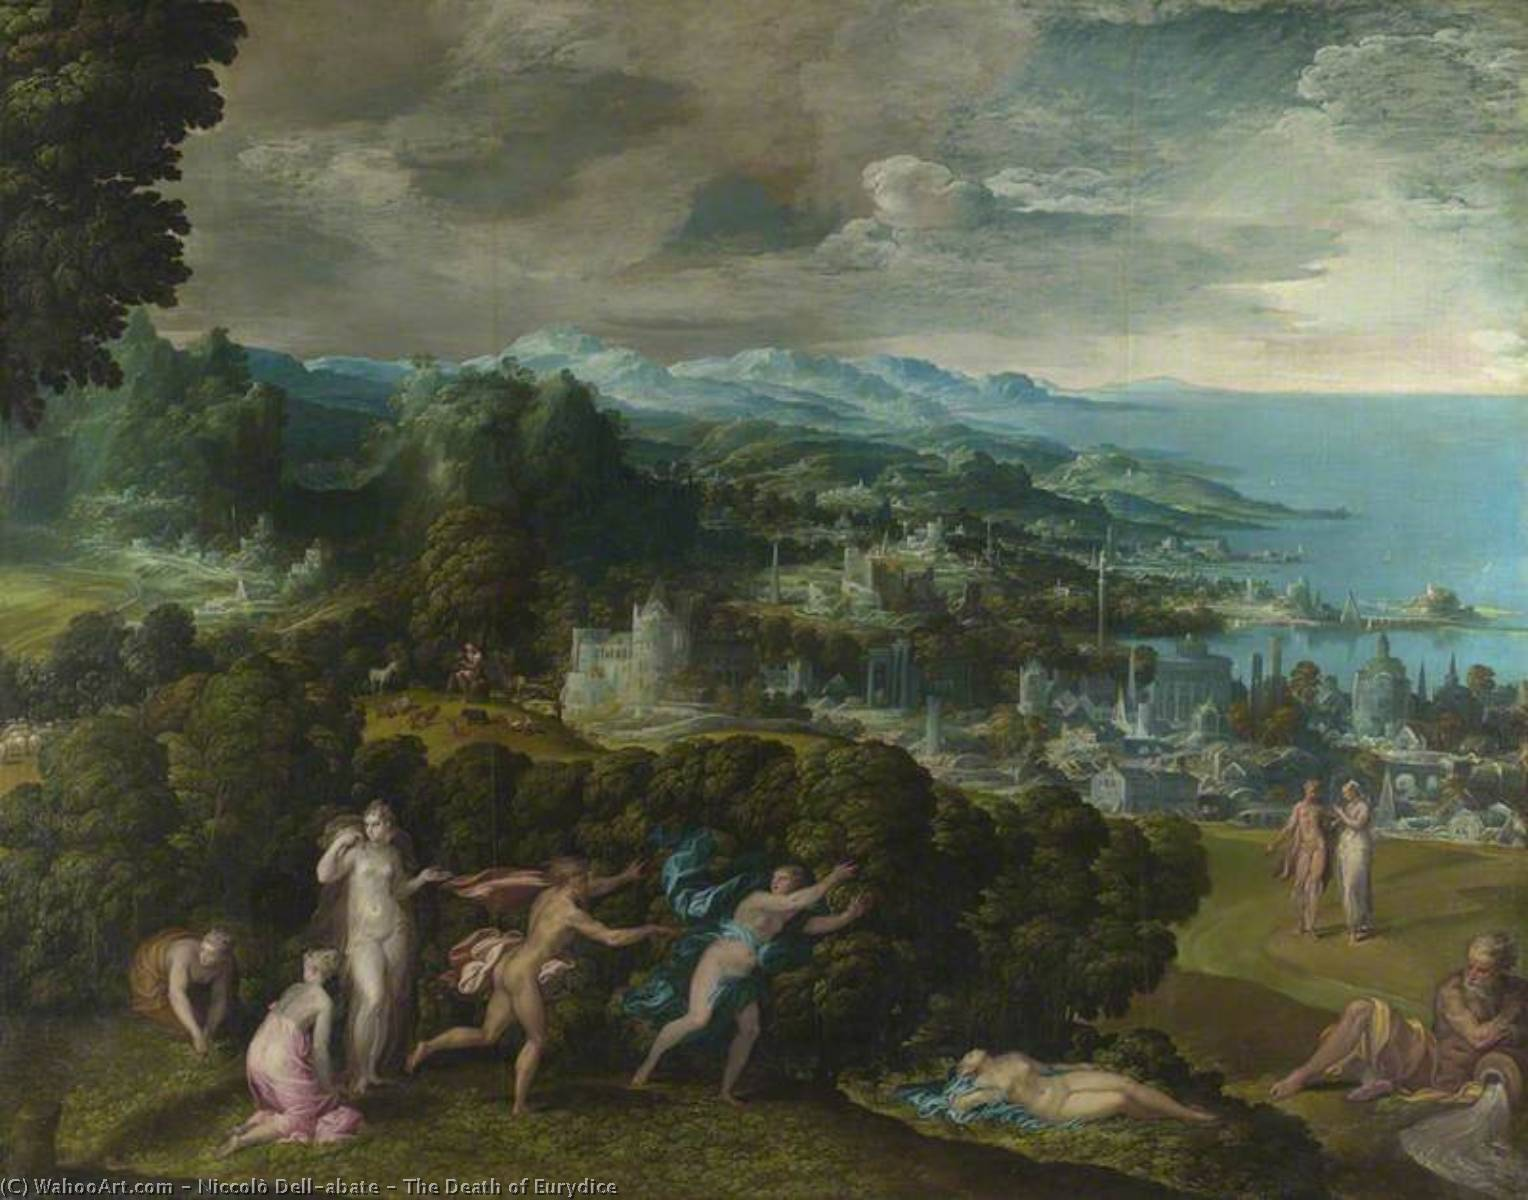 The Death of Eurydice, Oil On Canvas by Niccolo Dell' Abate